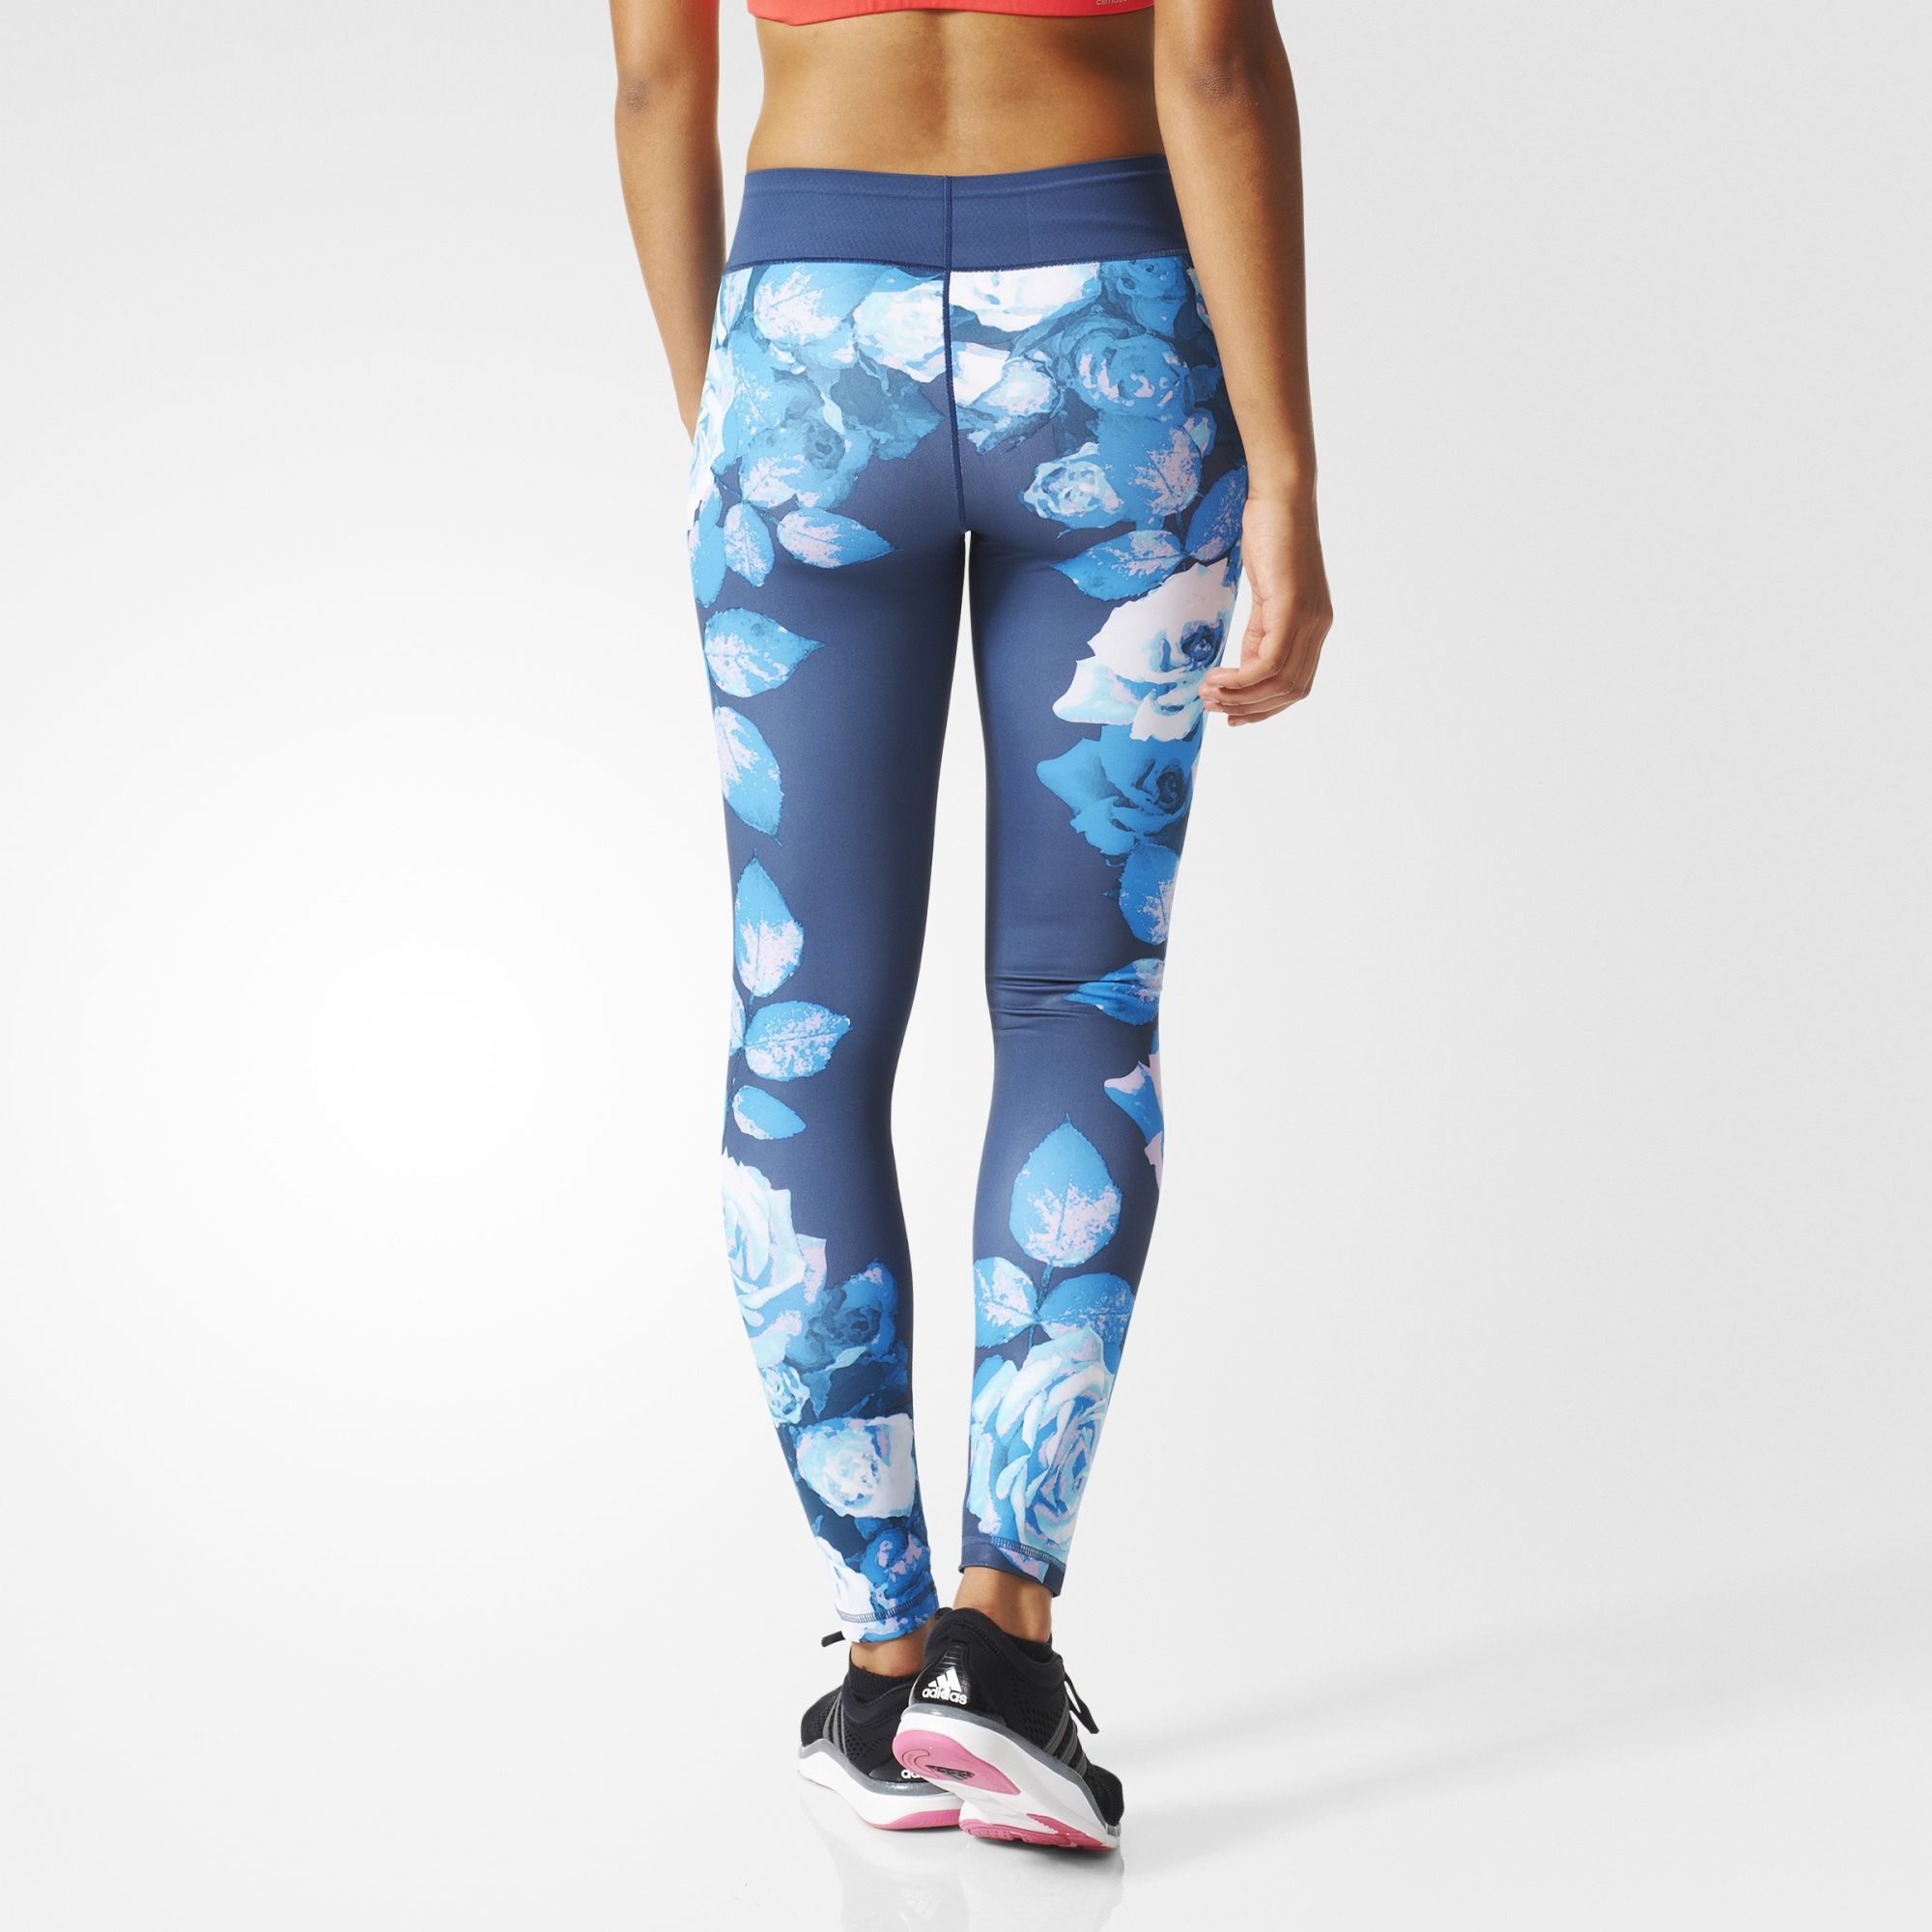 adidas Ultimate Fit Europe Pinterest Tights Stuff I Want Pinterest Europe a430db